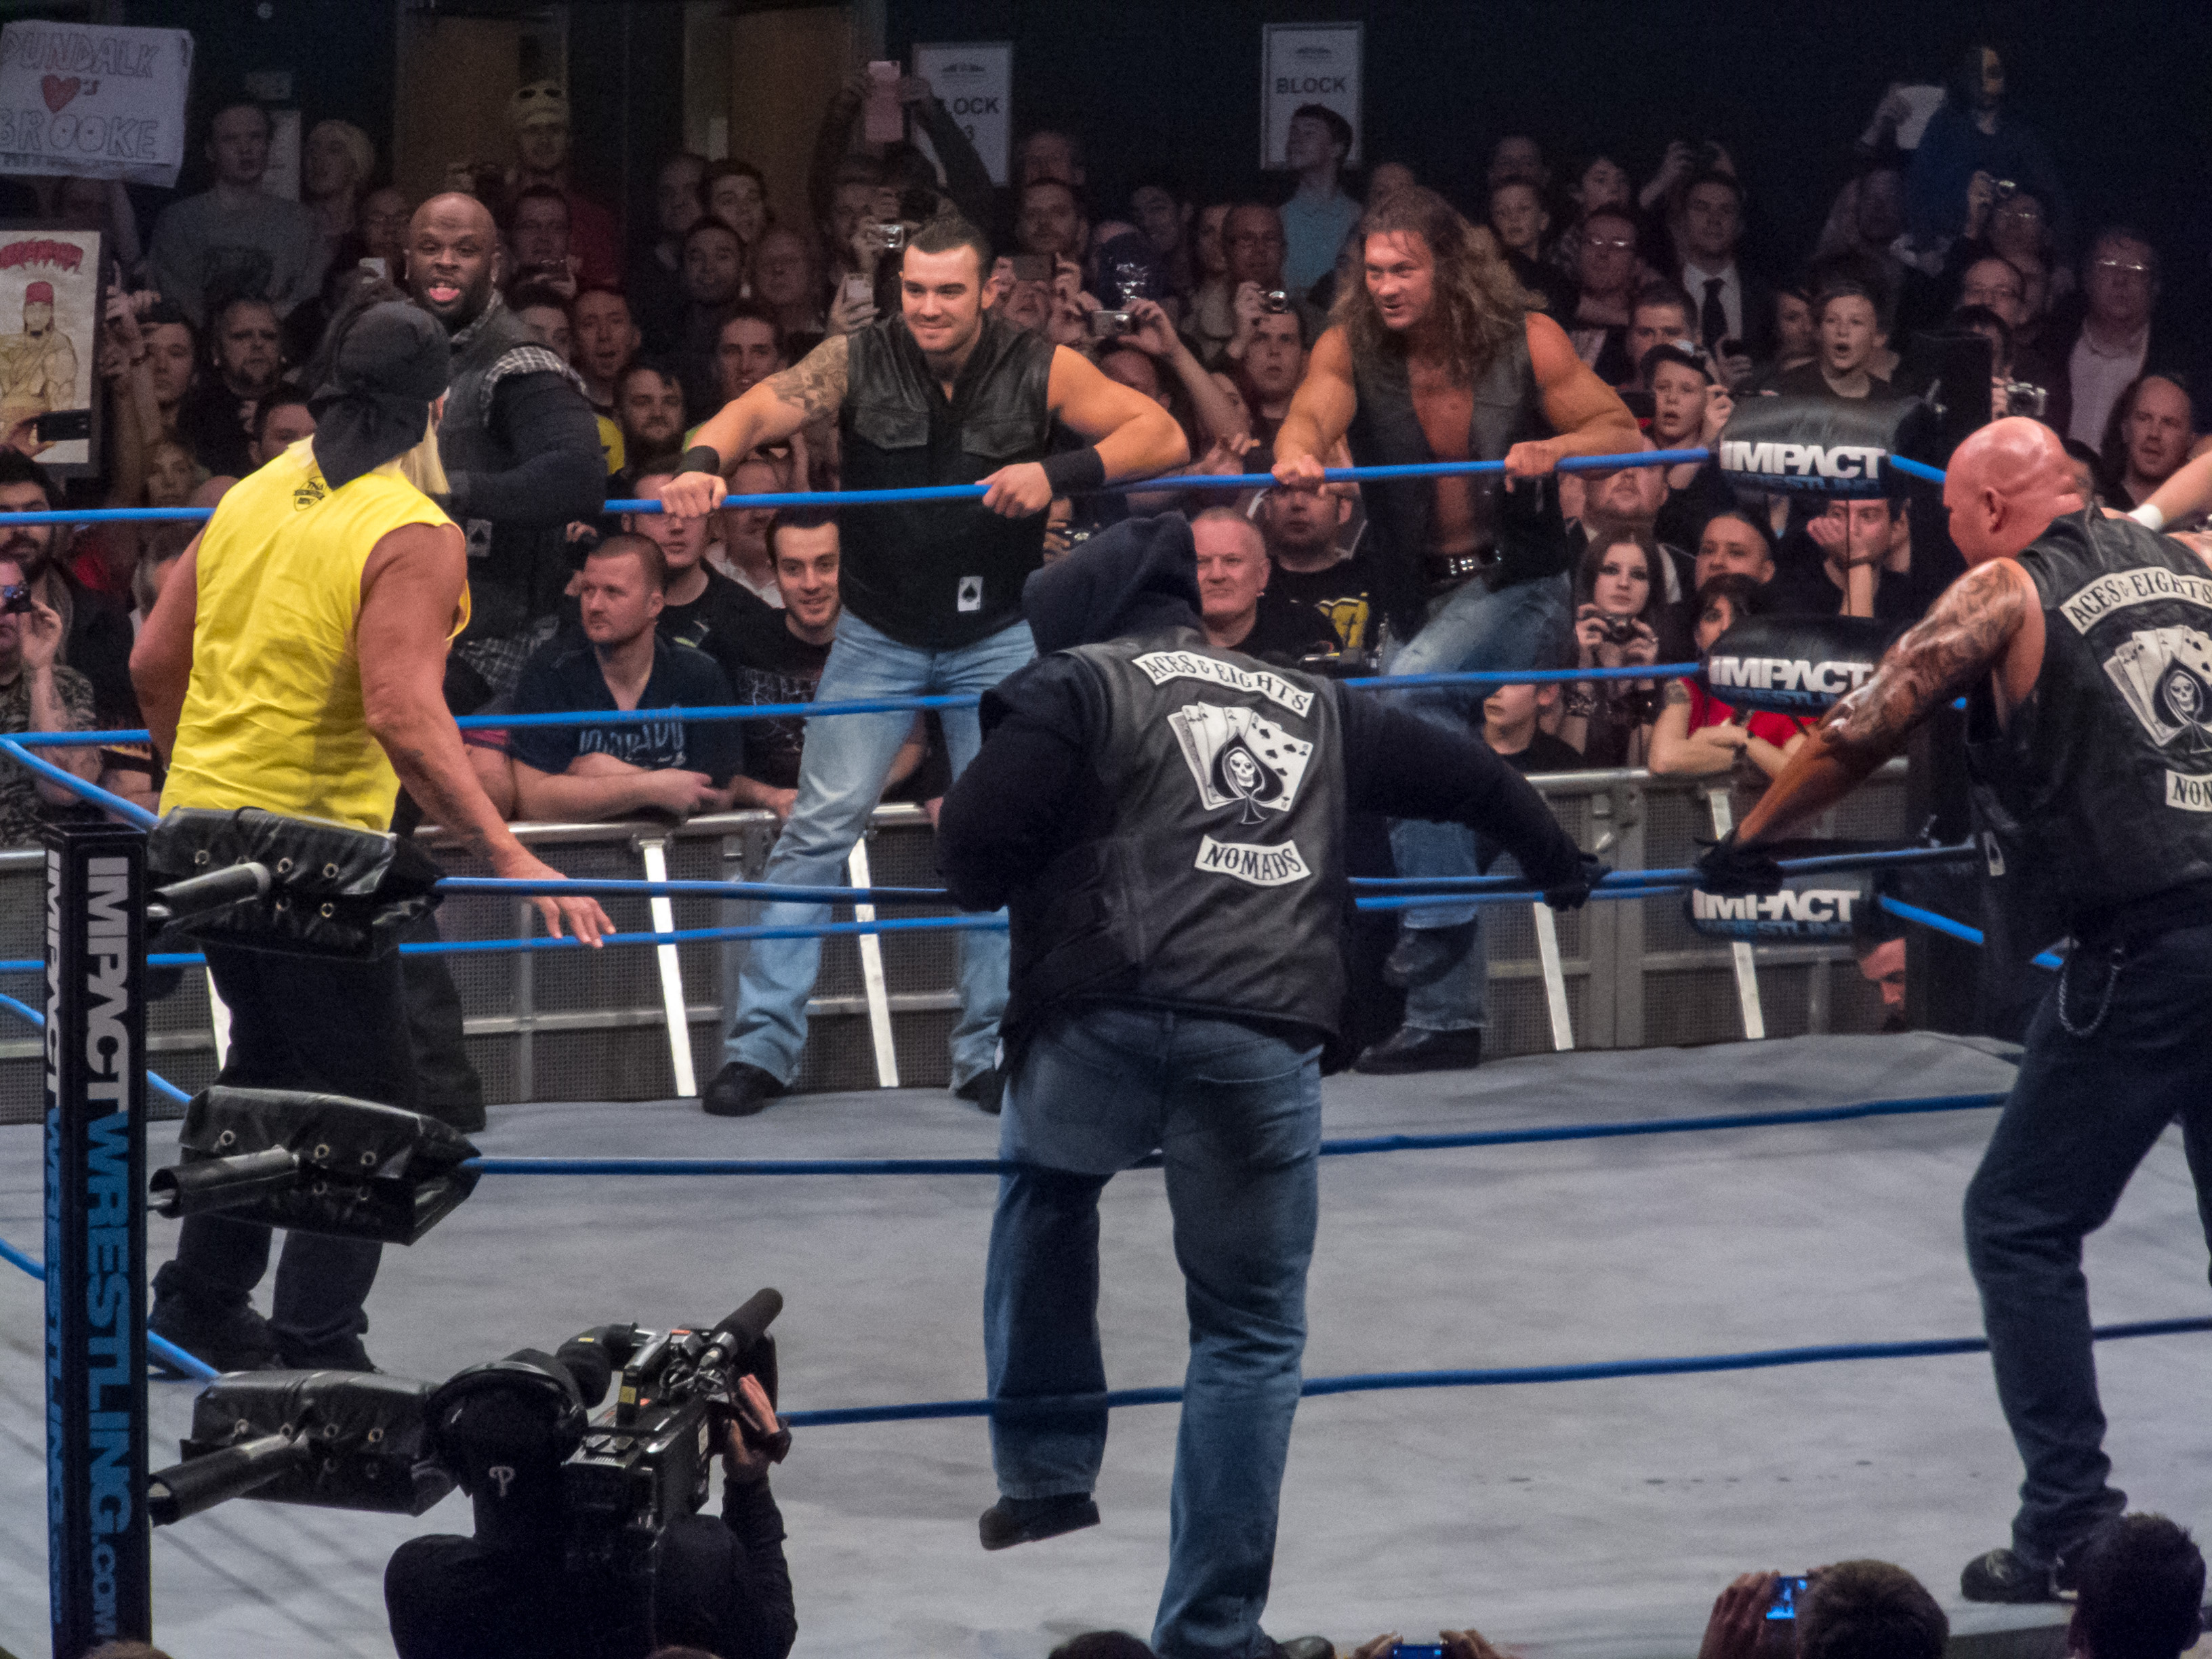 File:Aces & Eights prepare to attack Hulk Hogan.jpg - Wikimedia Commons